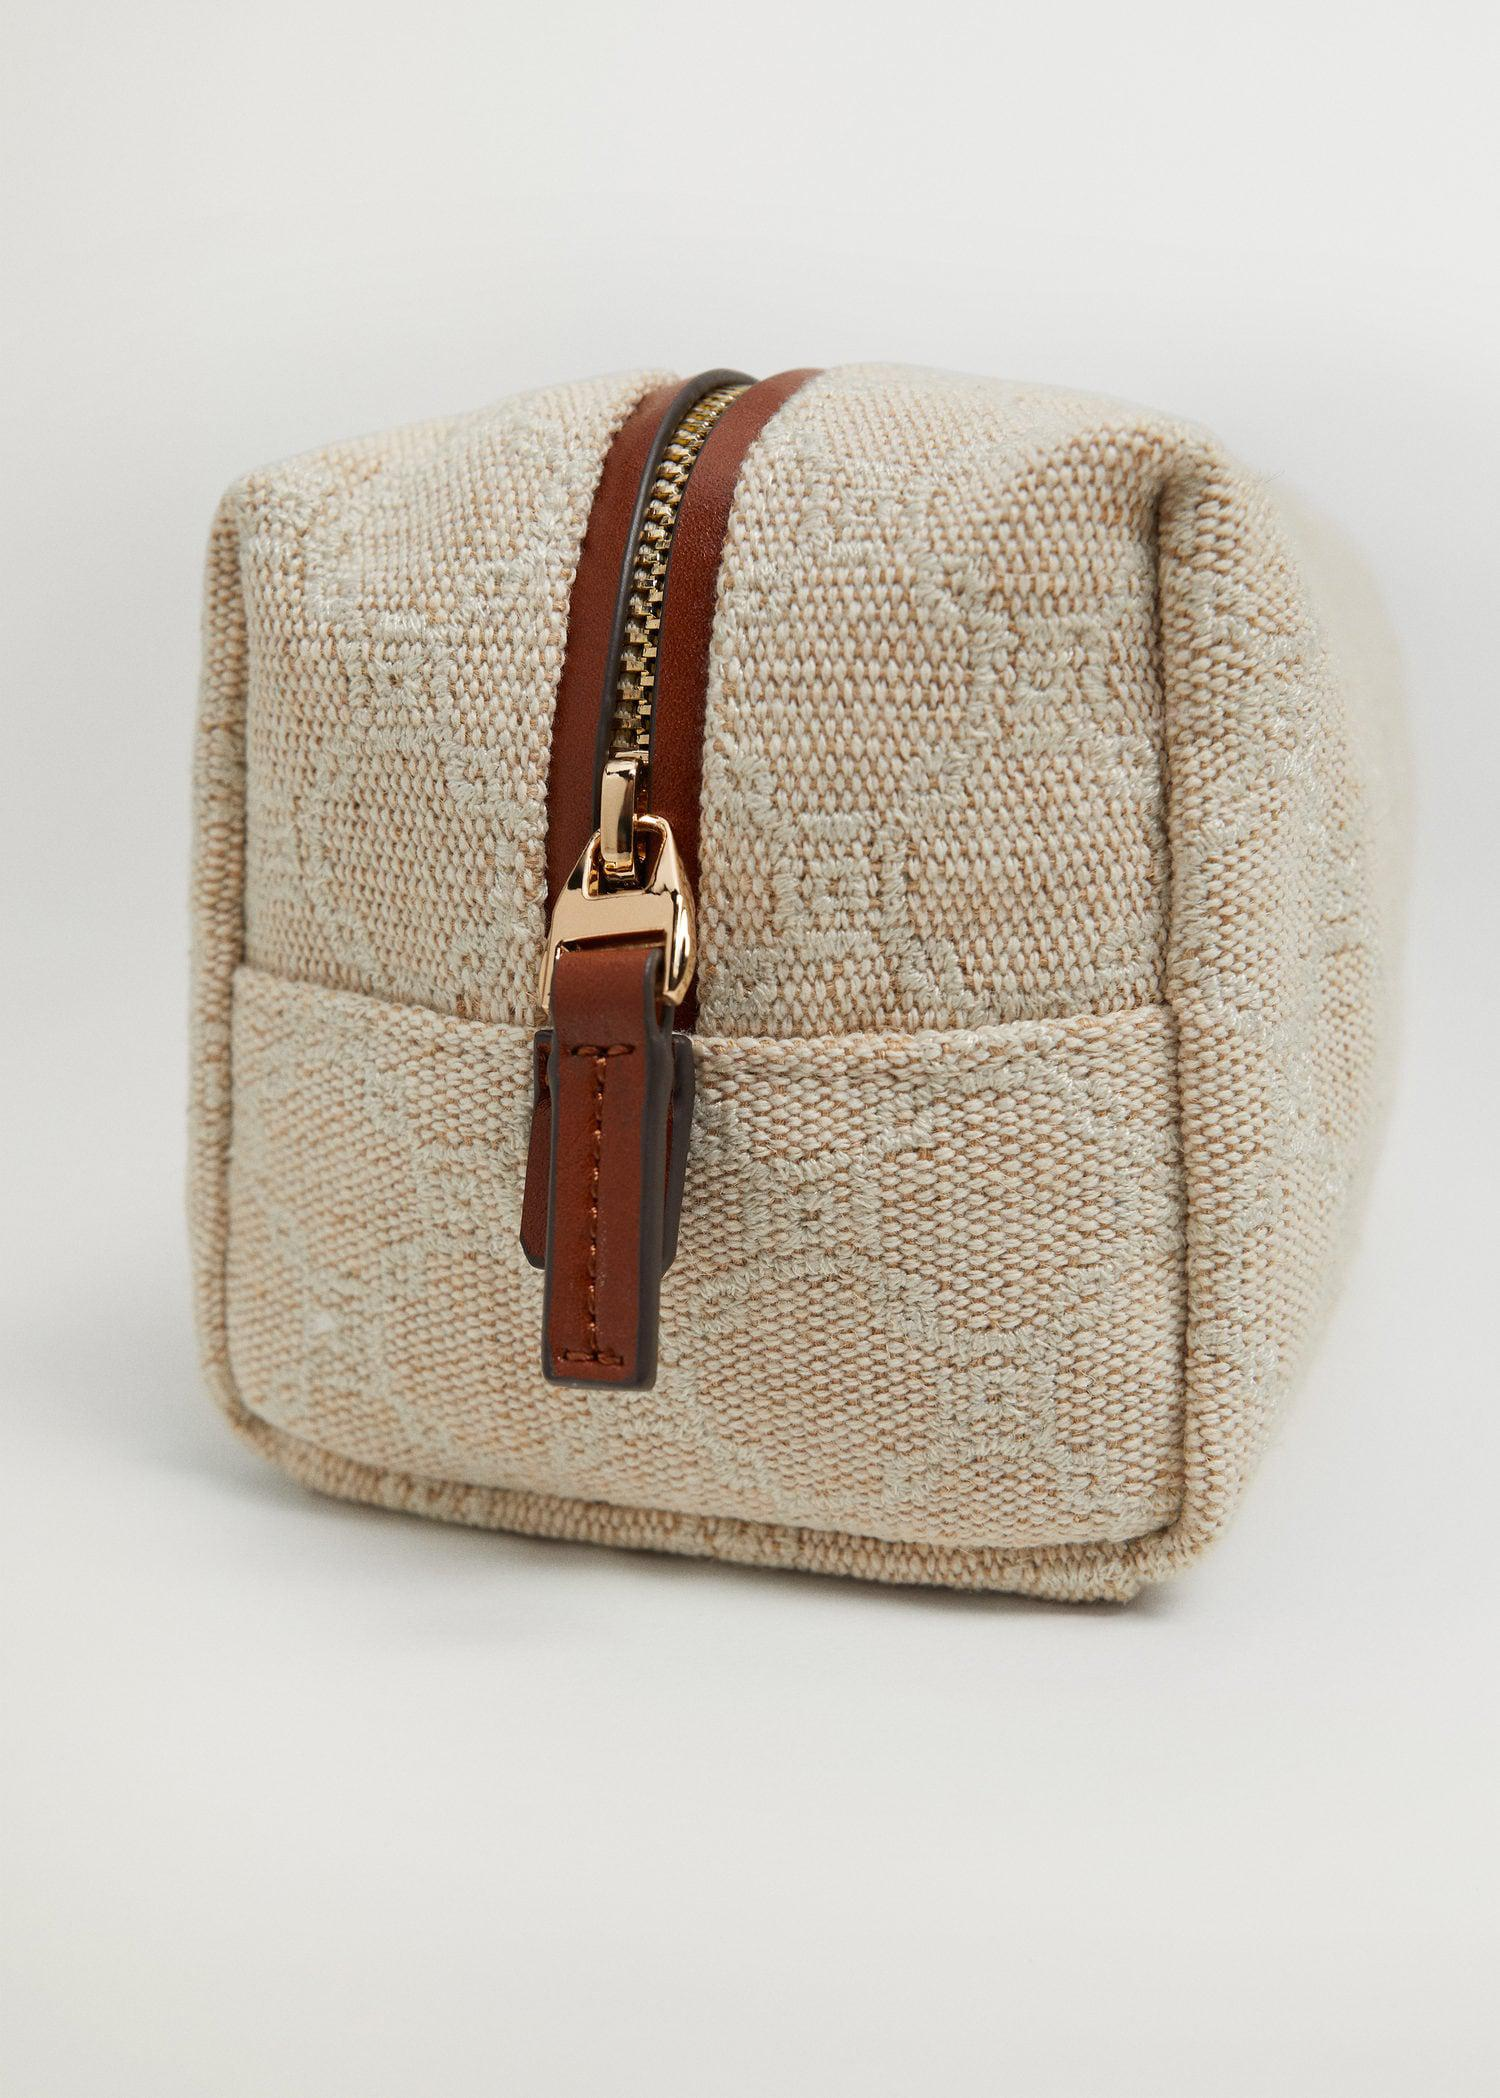 Embroidered jute cosmetic bag 2